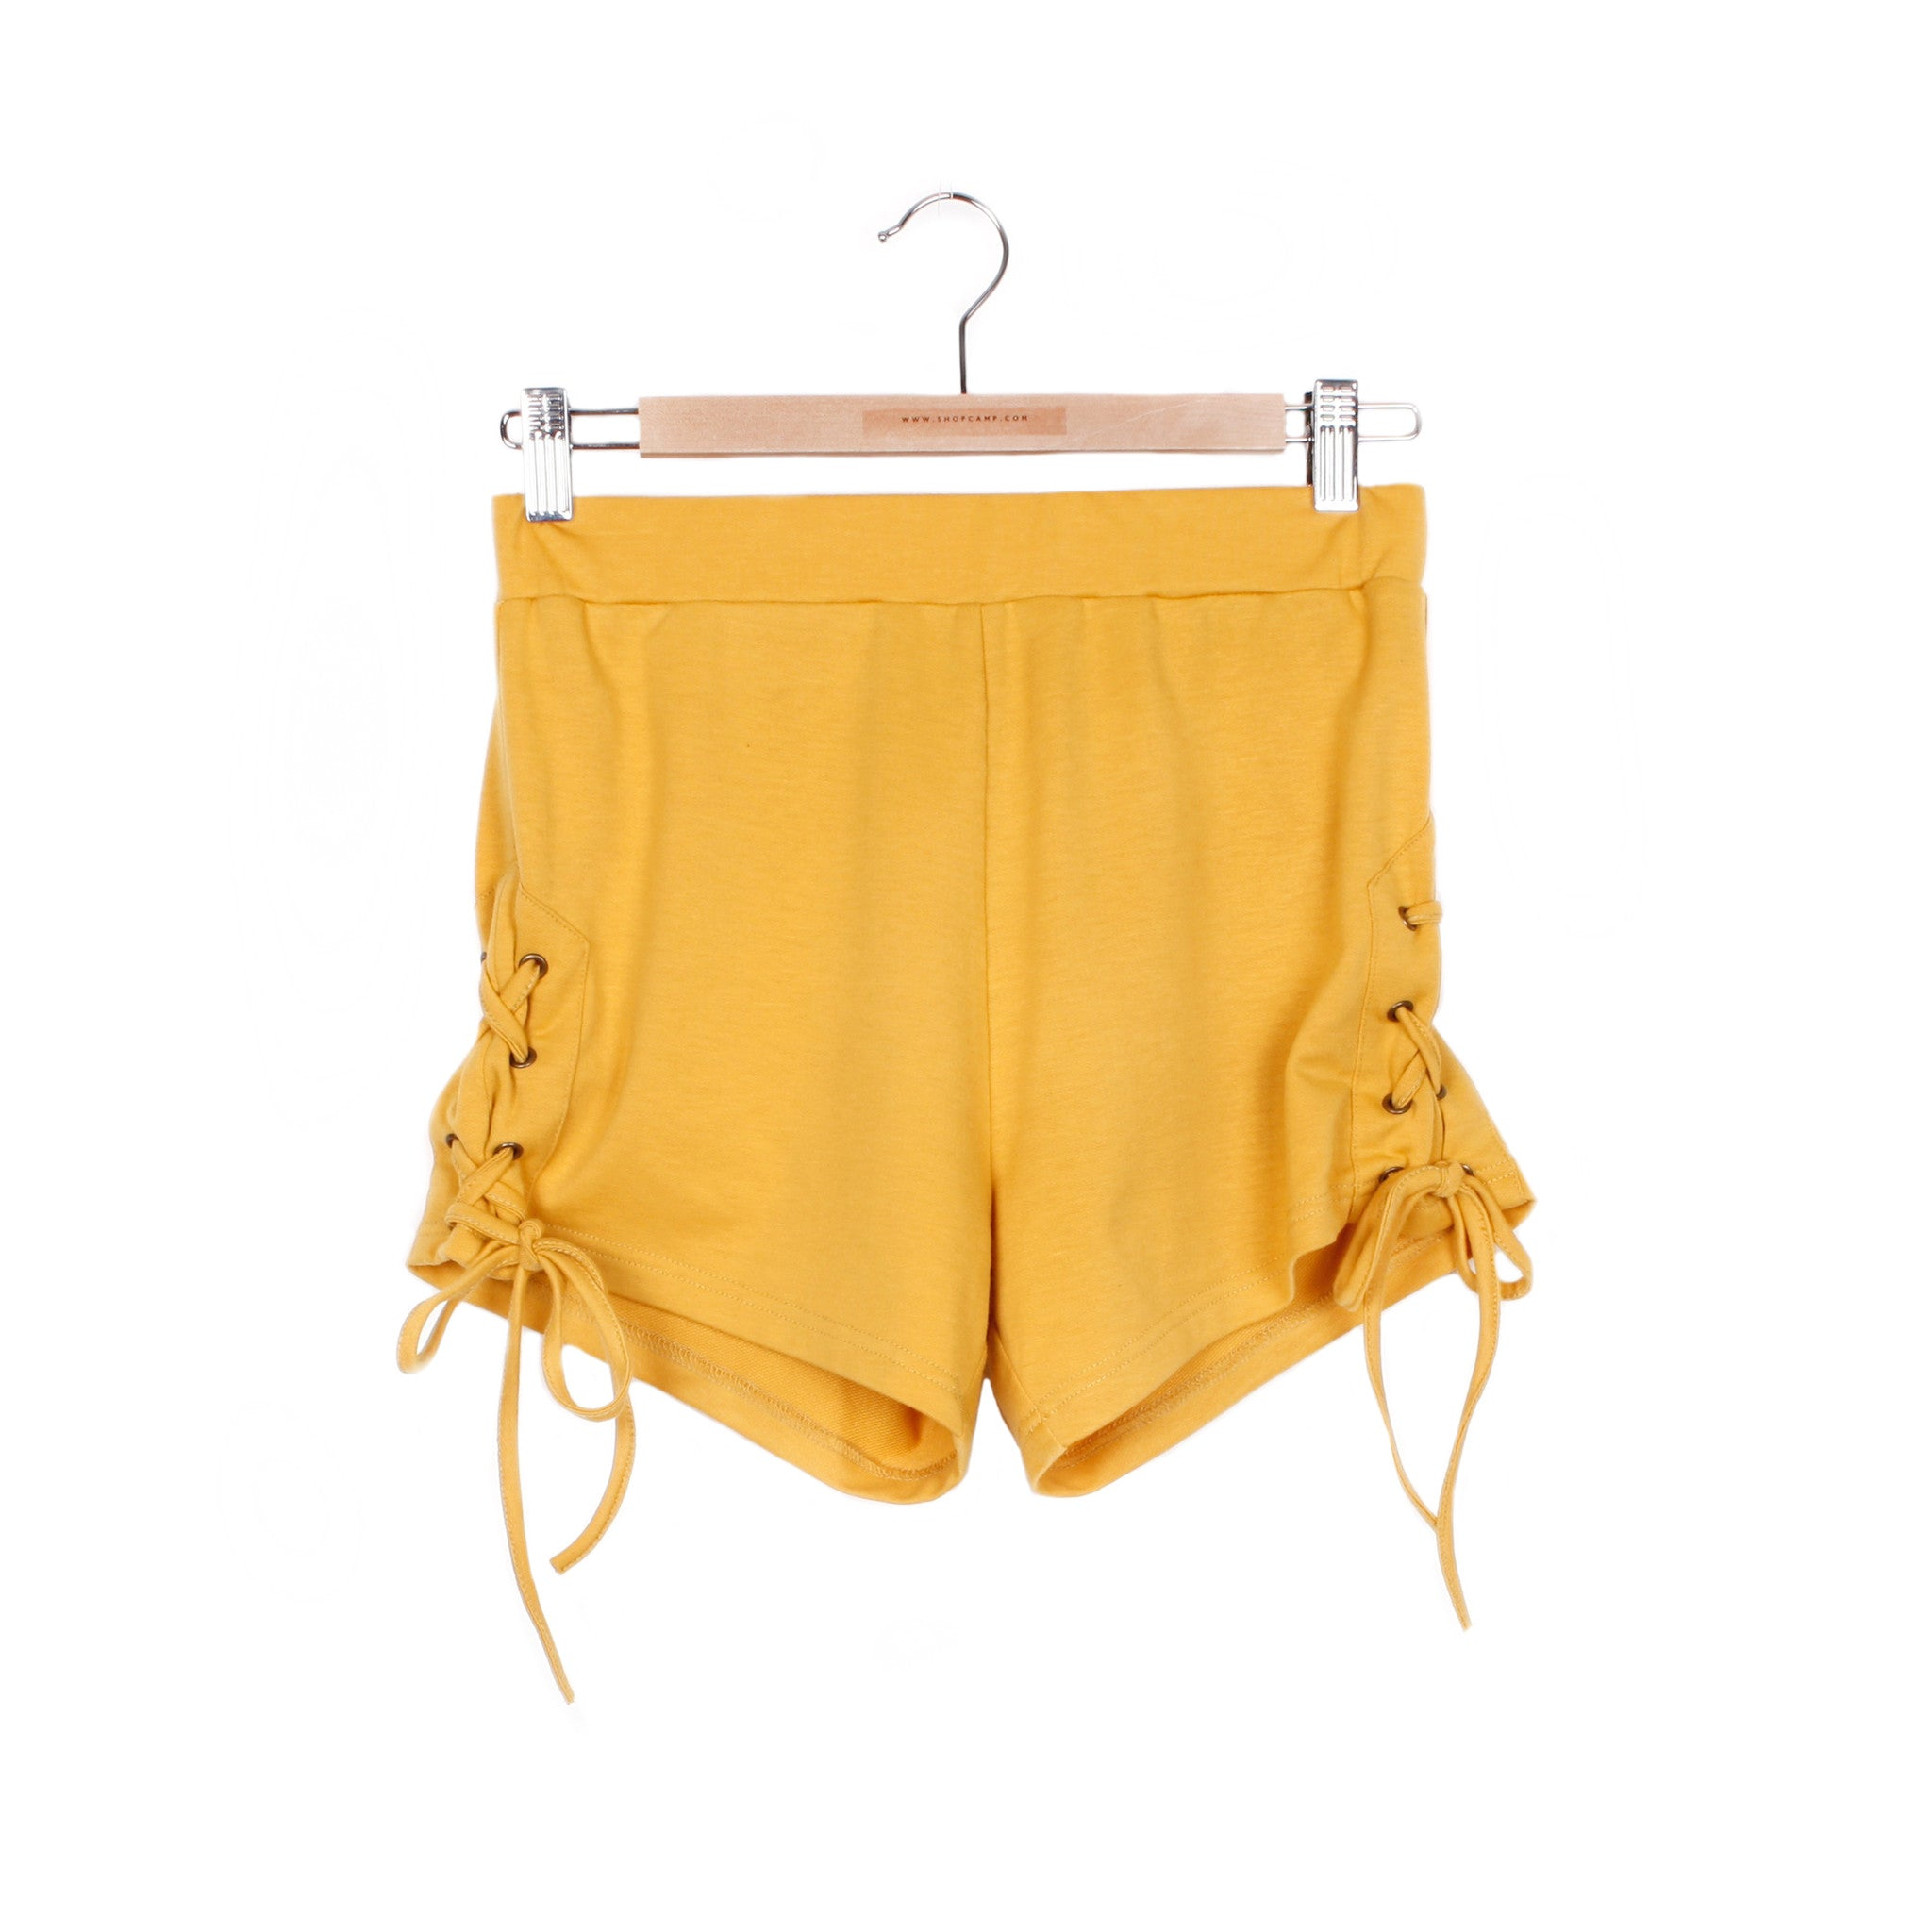 MARYANN SHORTS - MARIGOLD / SMALL - CAMP Collection - 1